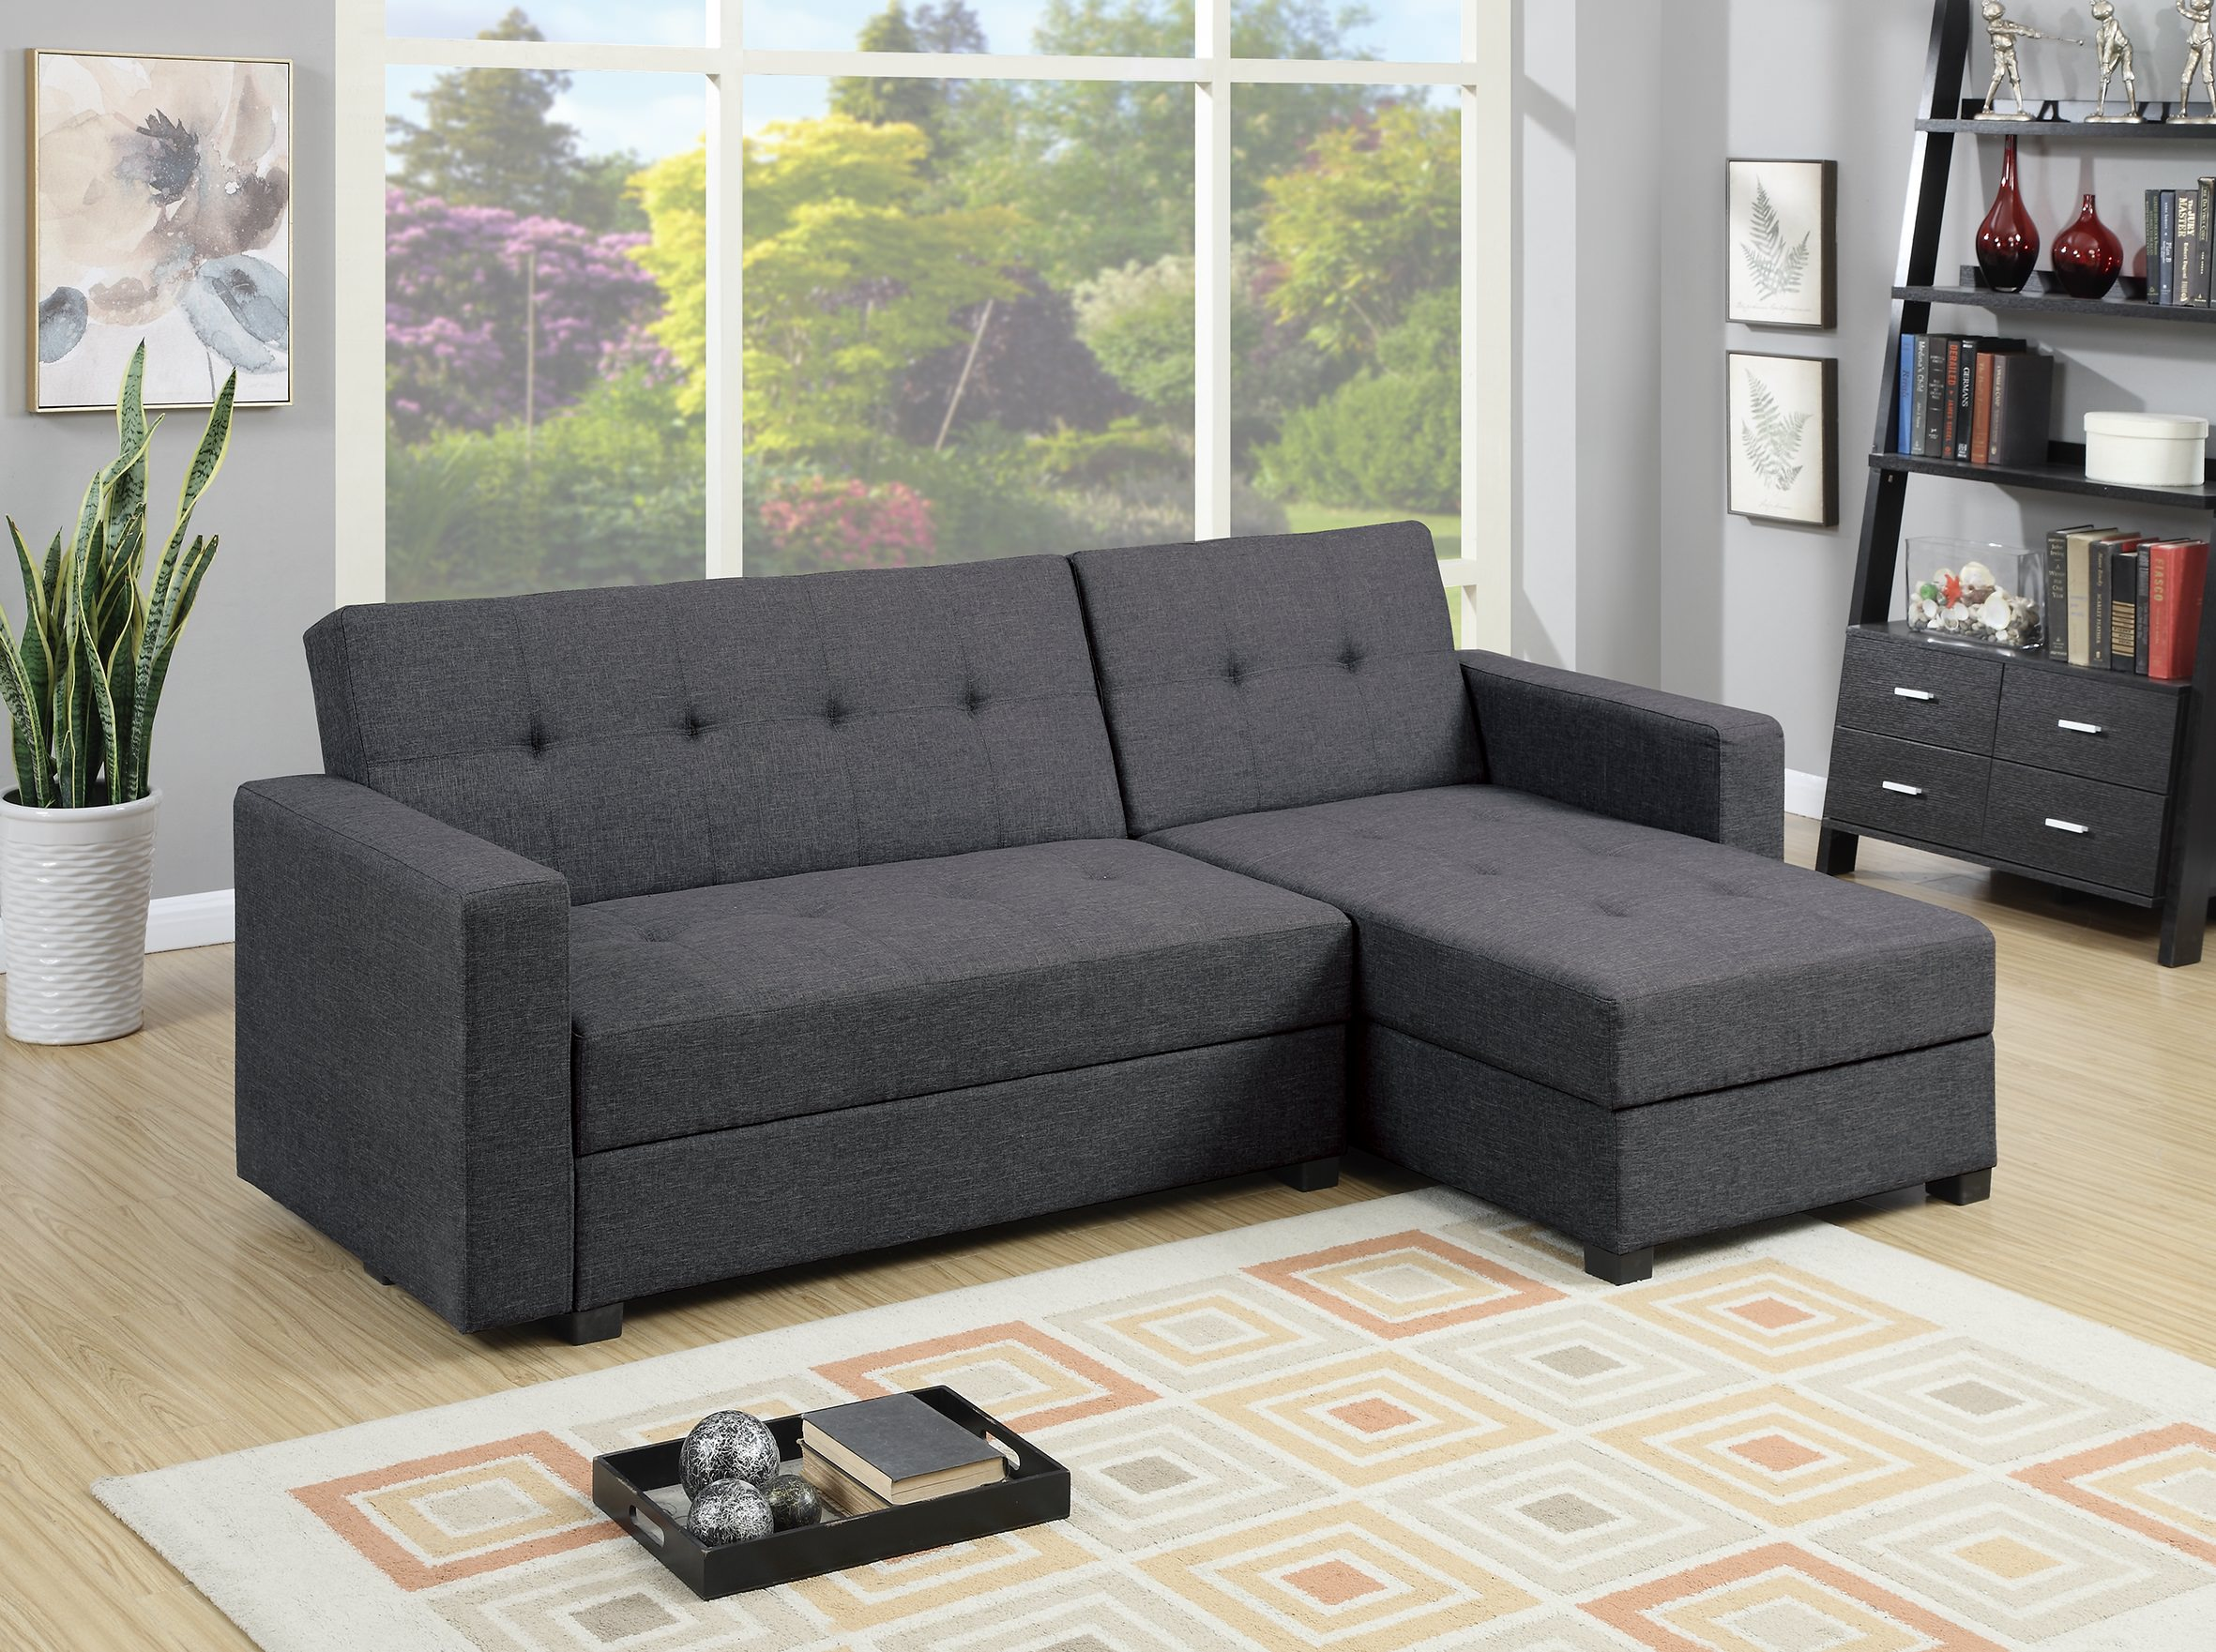 F7896 Gray Reversible Chaise Sectional Sofa By Poundex (Poundex Associates  Corporation)